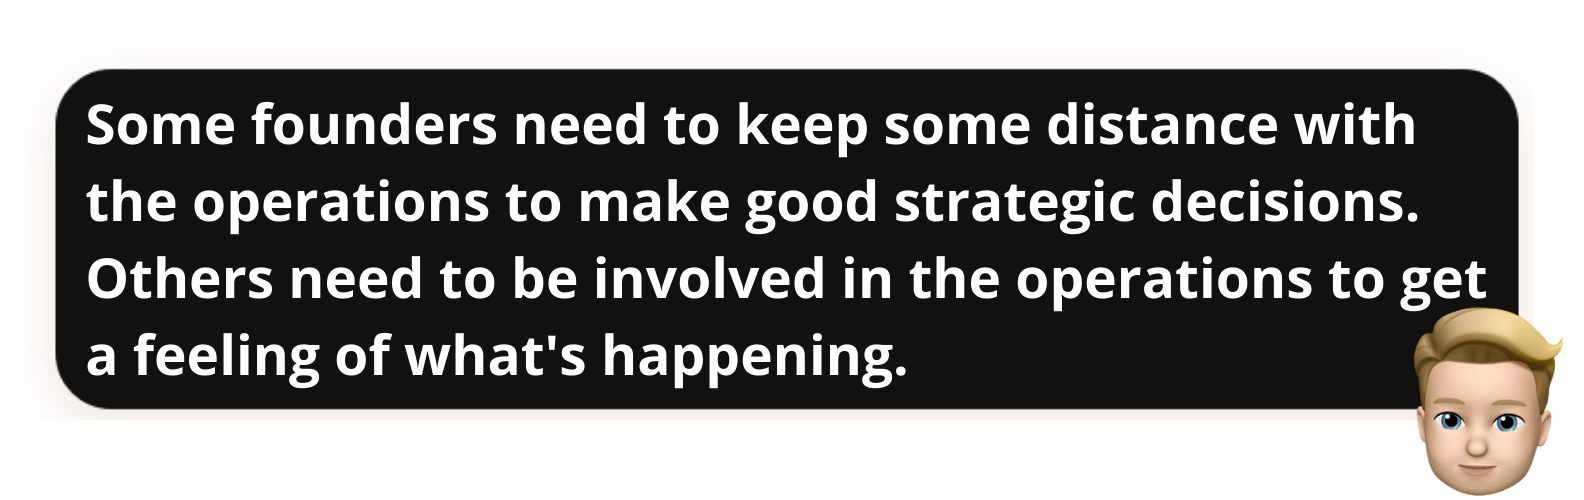 """""""Some founders need to keep some distance with the operations to make good strategic decisions. Others need to be involved in the operations to get a feeling of what's happening."""""""